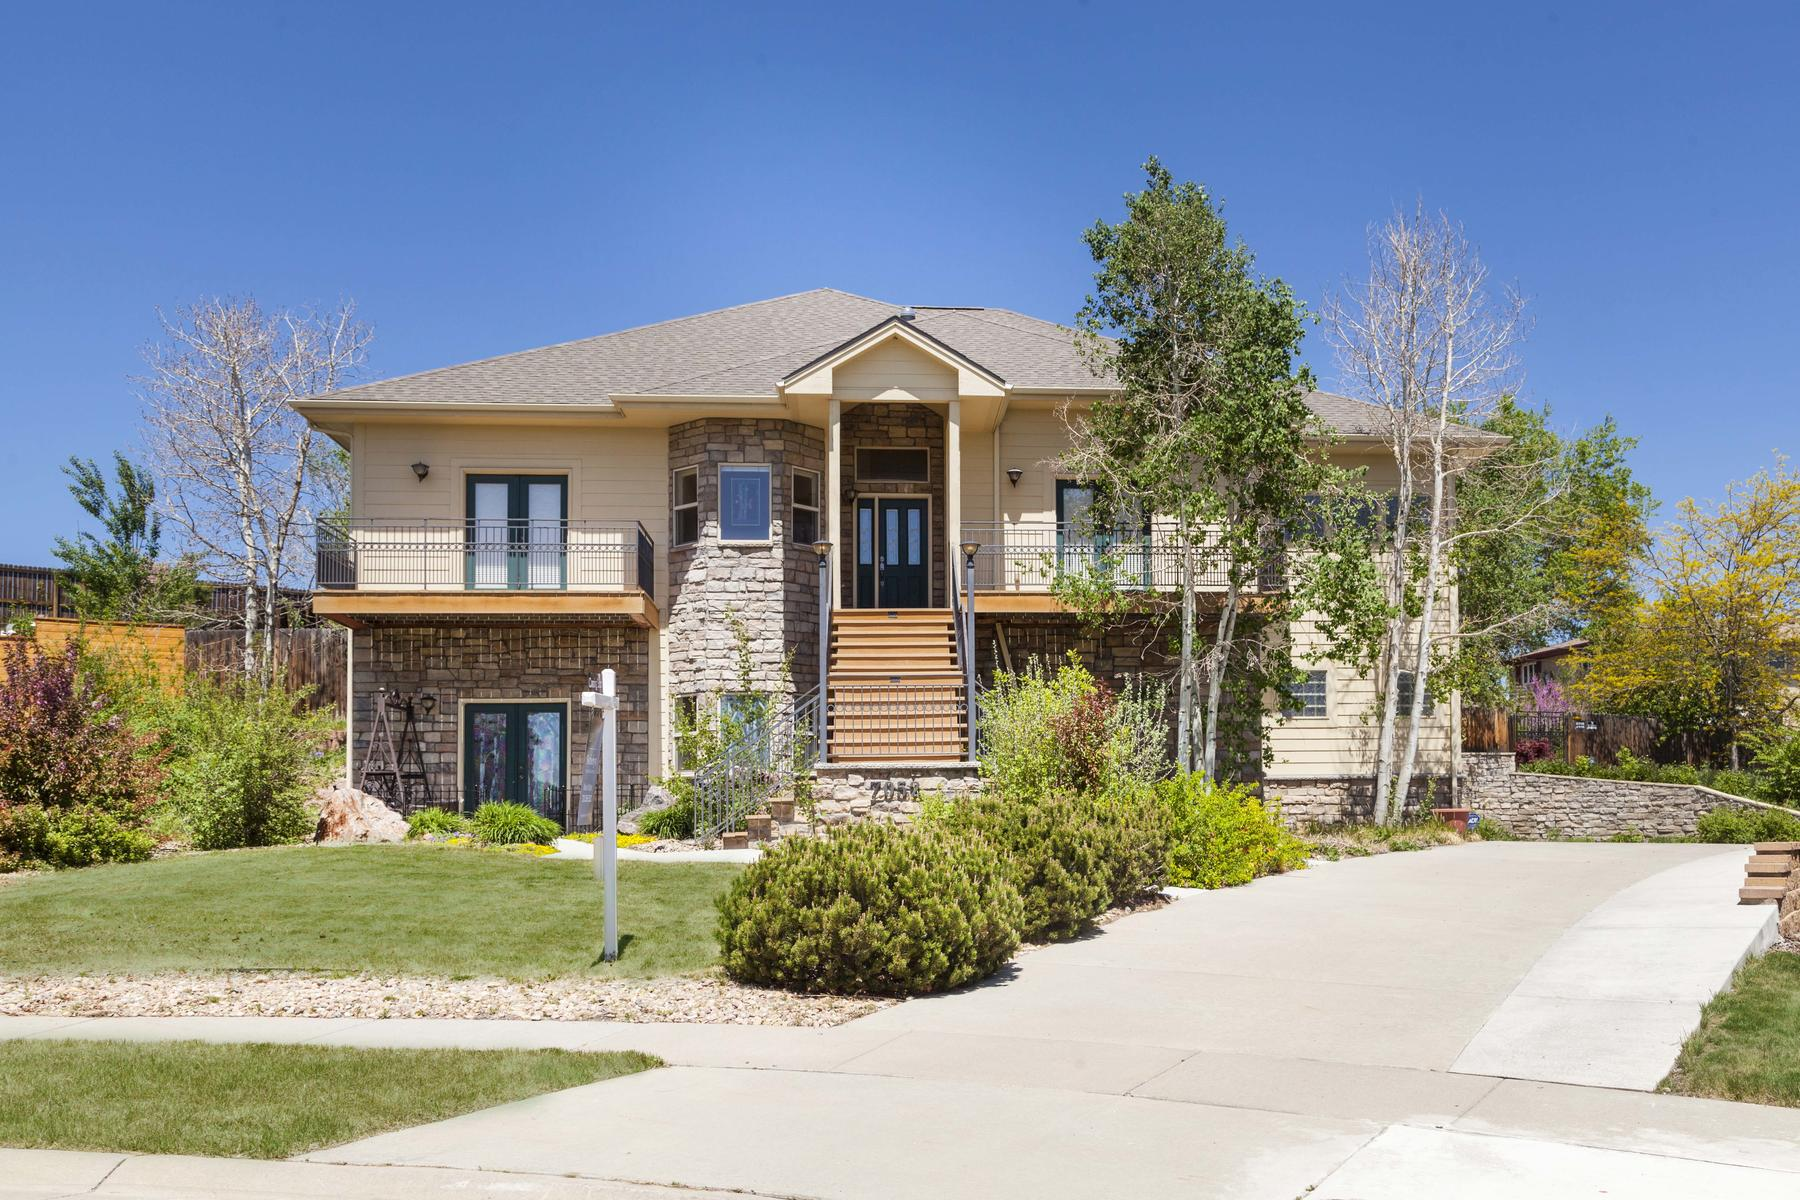 Single Family Home for Active at This Custom Home Is A Designers Masterpiece 7052 Vance Street Arvada, Colorado 80003 United States